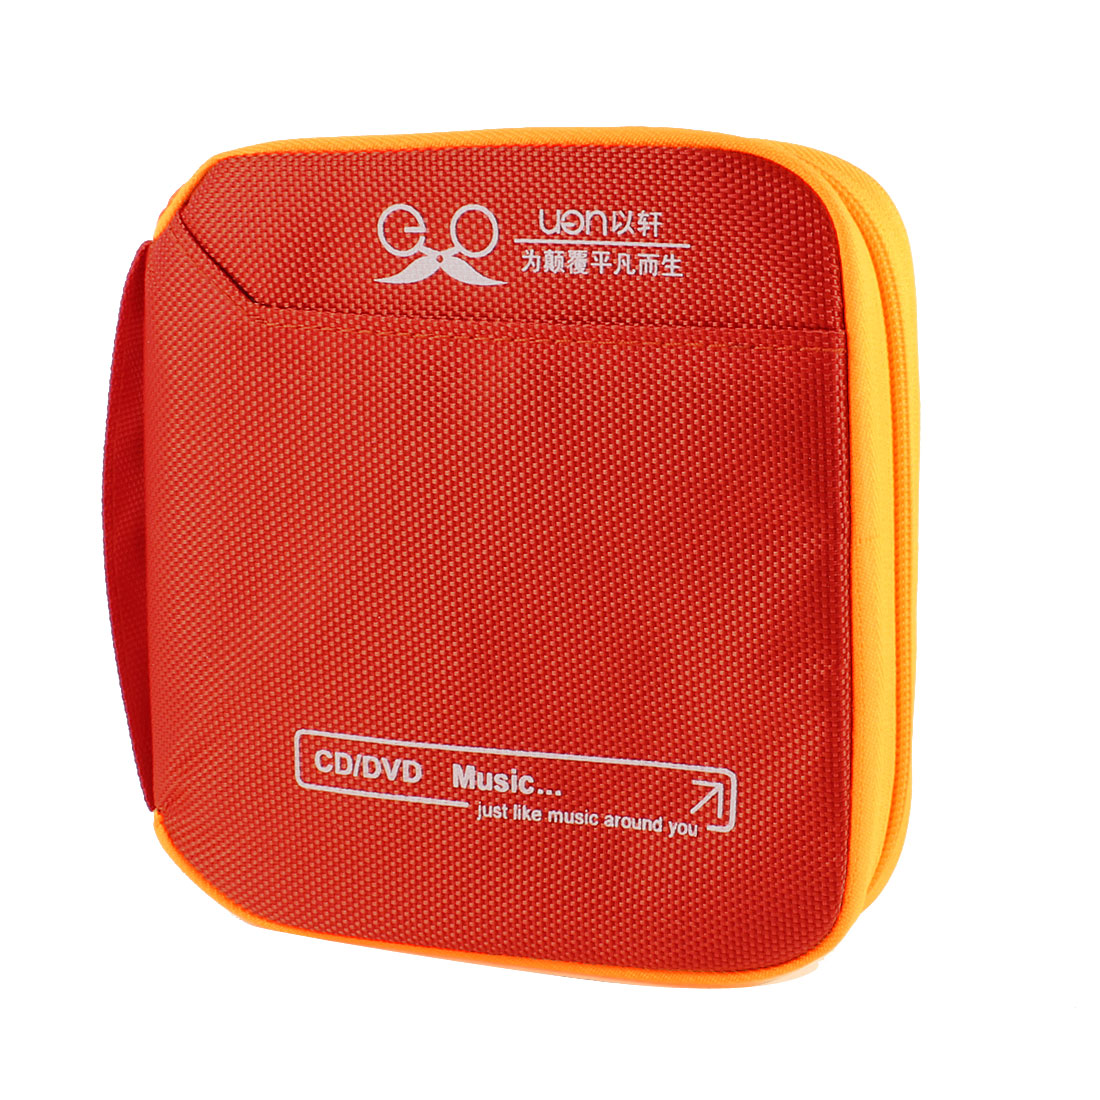 Car Nylon Square 32pcs CD DVD Discs Organizer Carrying Holder Red Orange